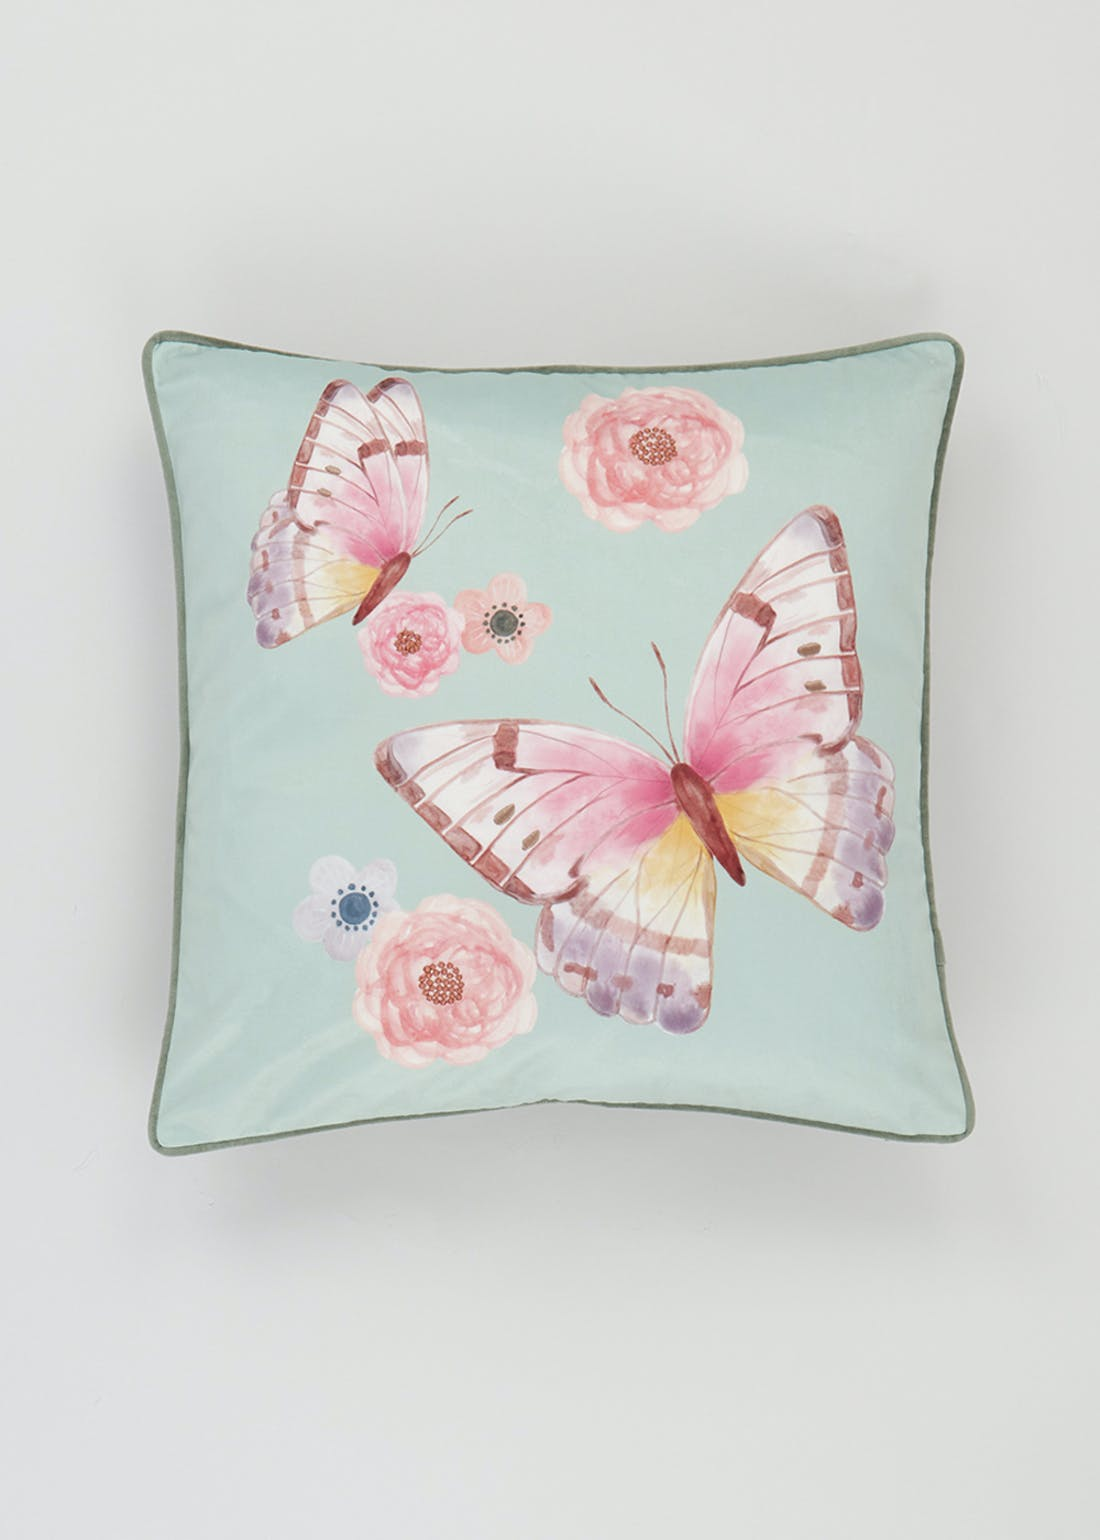 Embroidered Velvet Butterfly Cushion (46cm x 46cm)